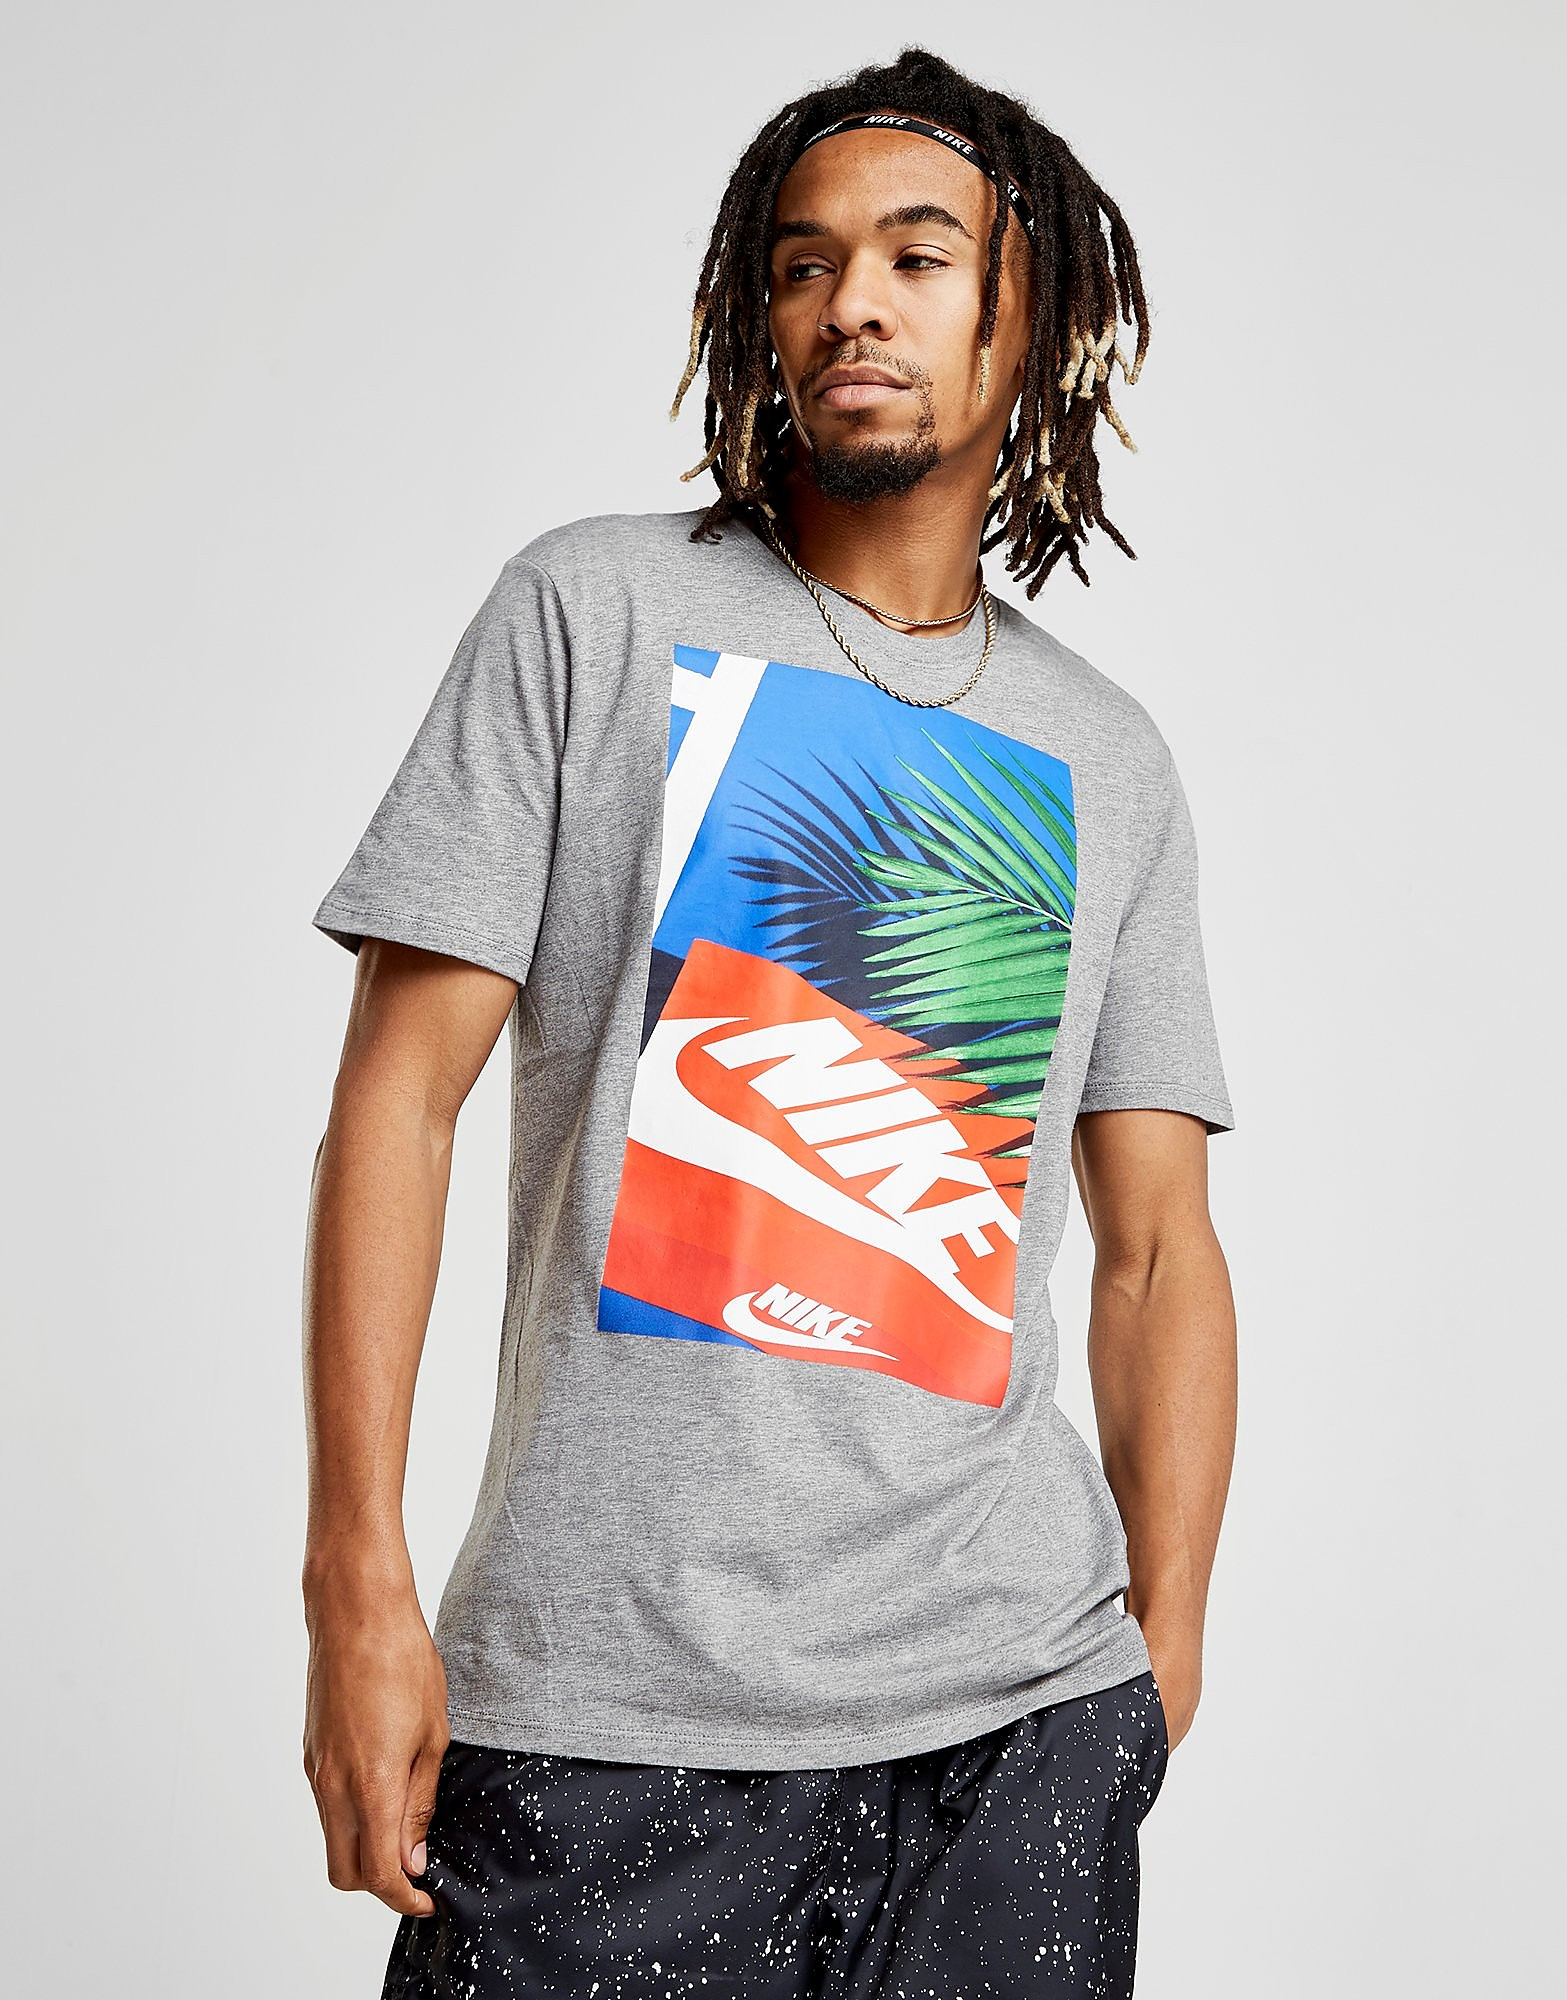 Nike Shoe Box Short Sleeve T-Shirt